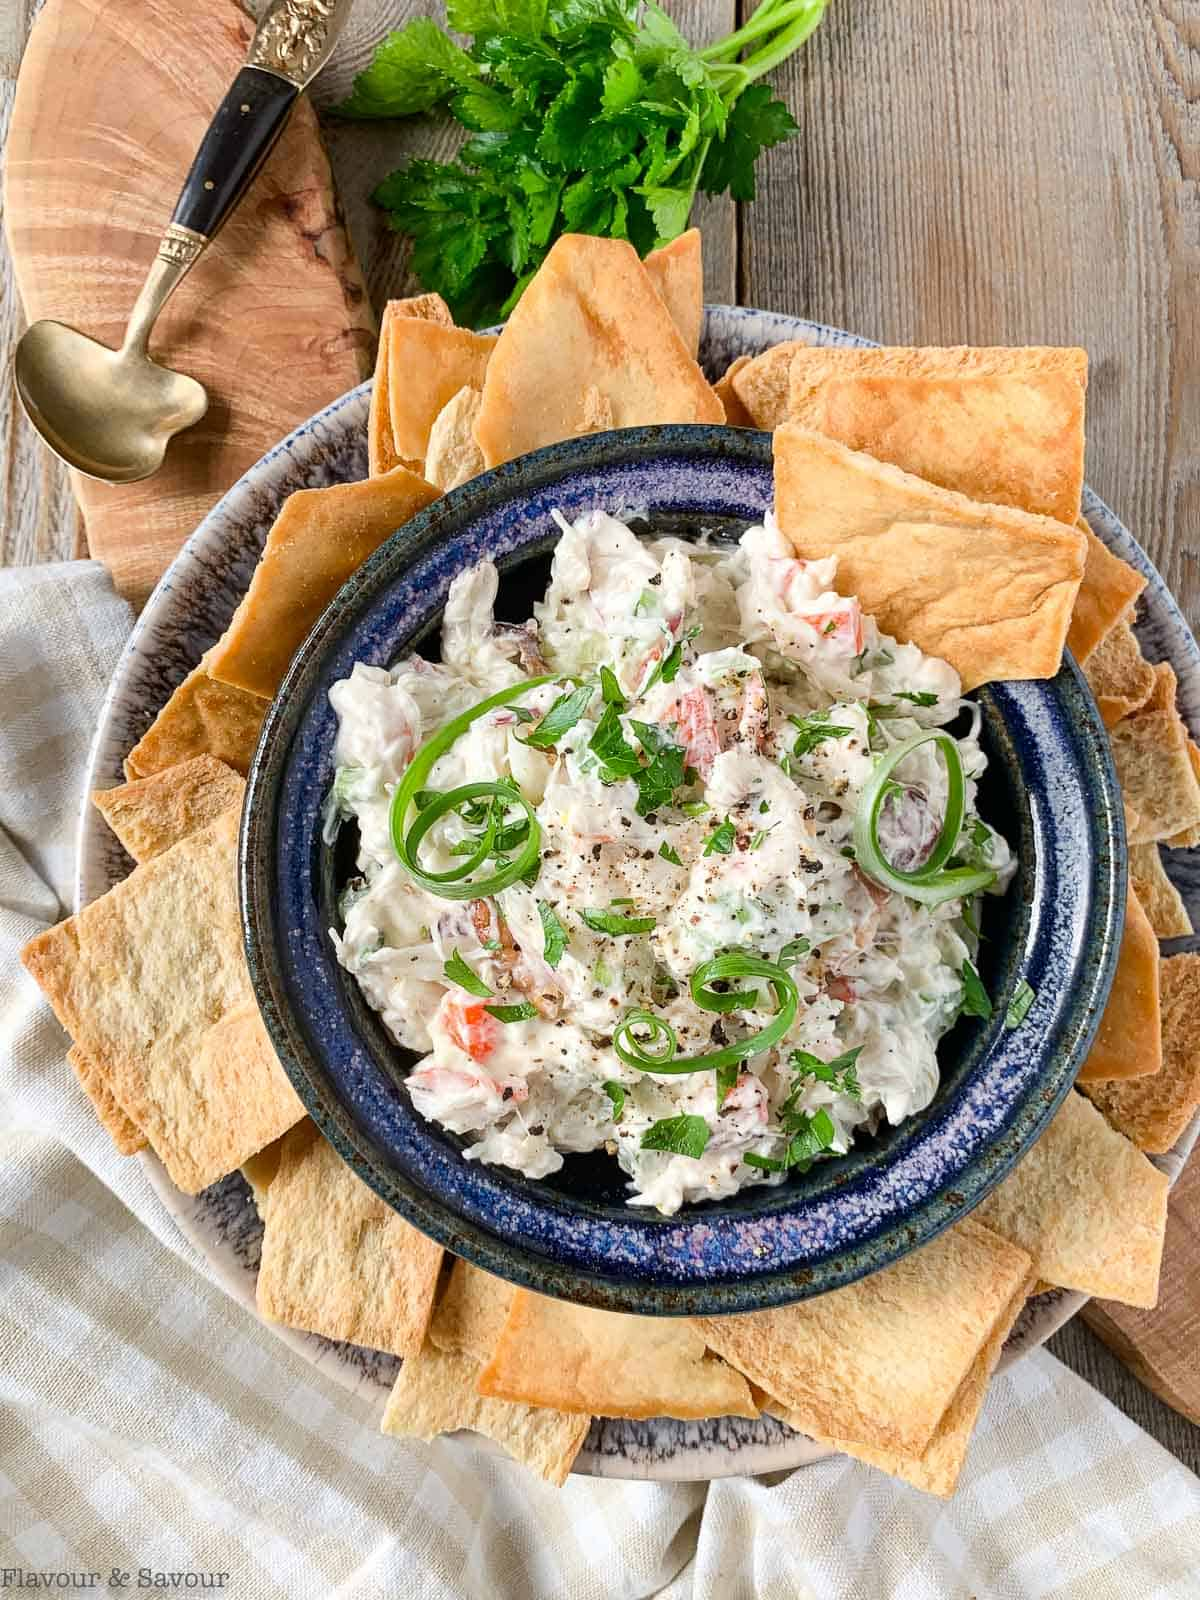 Overhead view of a bowl of cold crab dip surrounded by pita chips